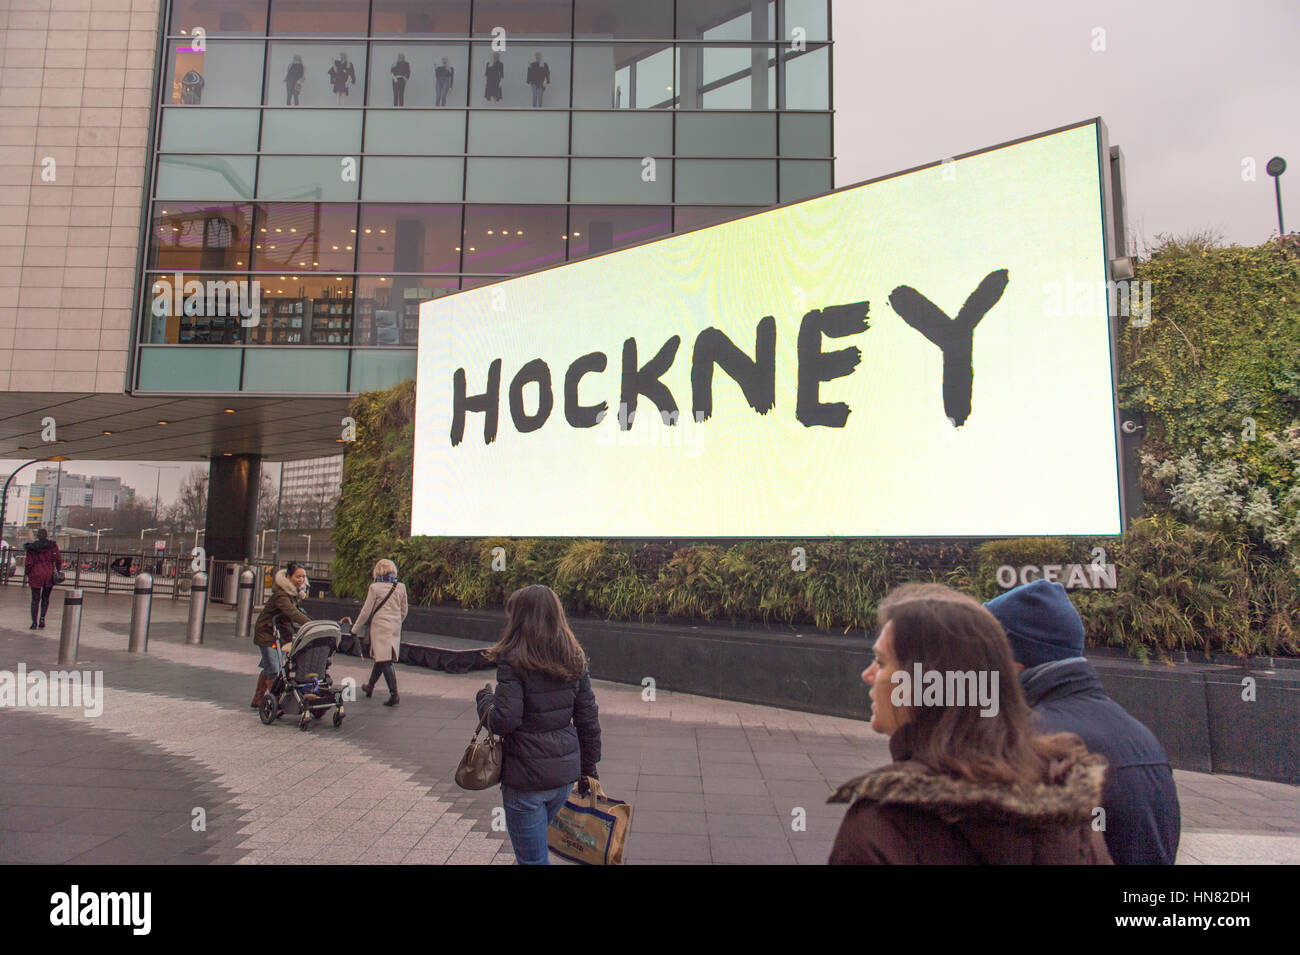 Westfield, London, UK. 9th Feb, 2017. On the day Tate Britain's David Hockney exhibition opens to the public, Tate Stock Photo